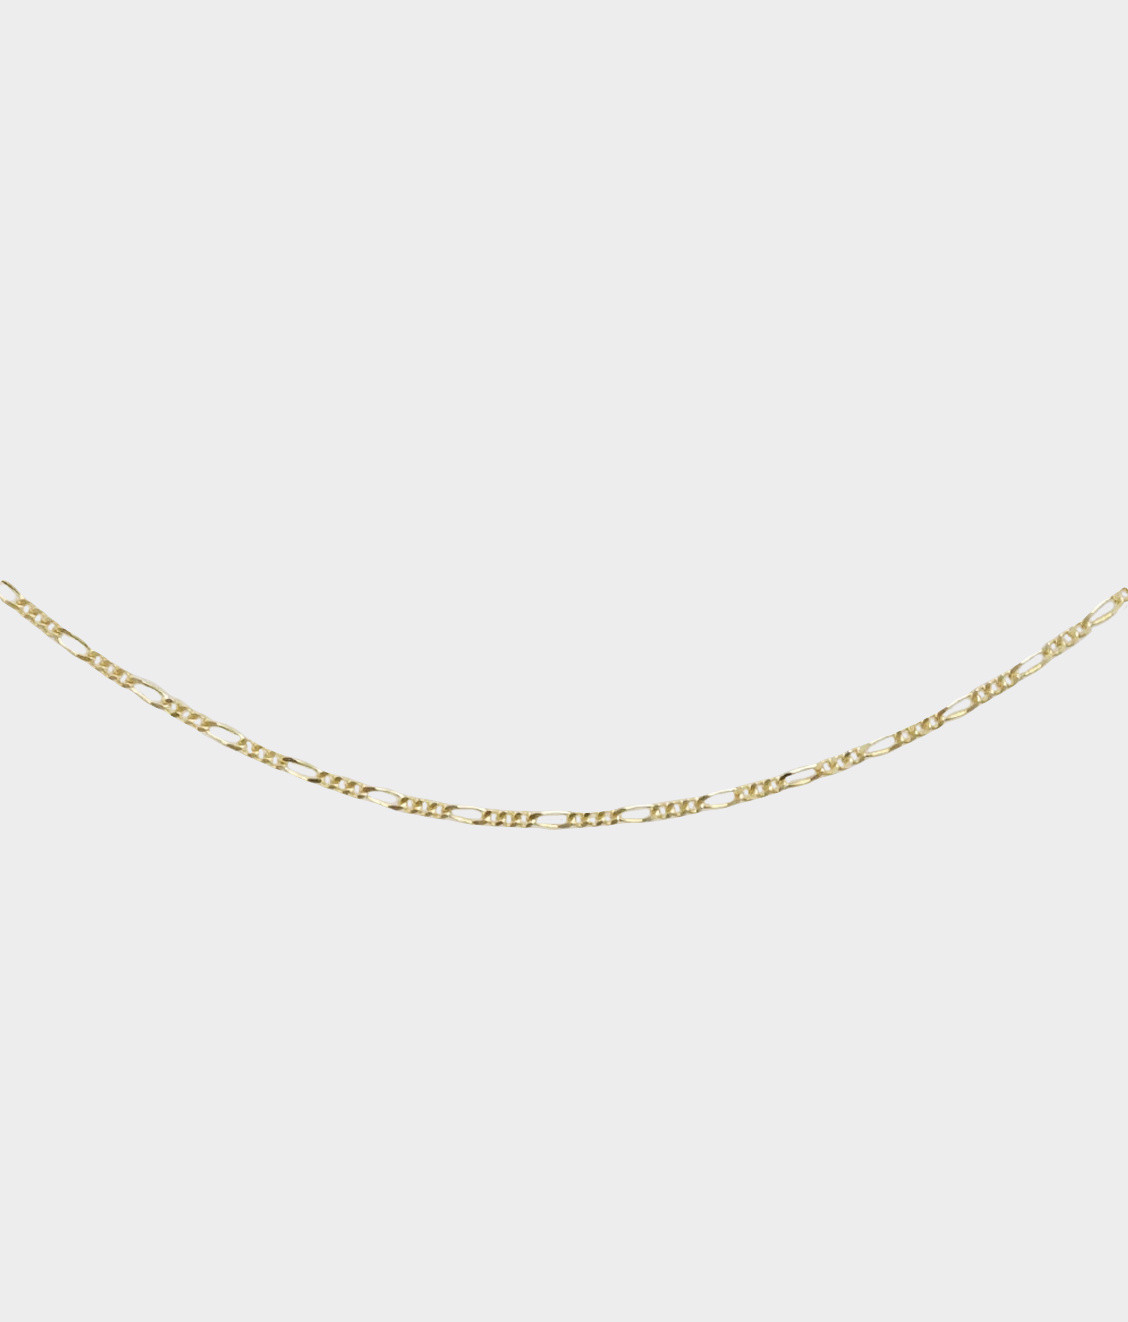 Golia Golia Adriana Necklace